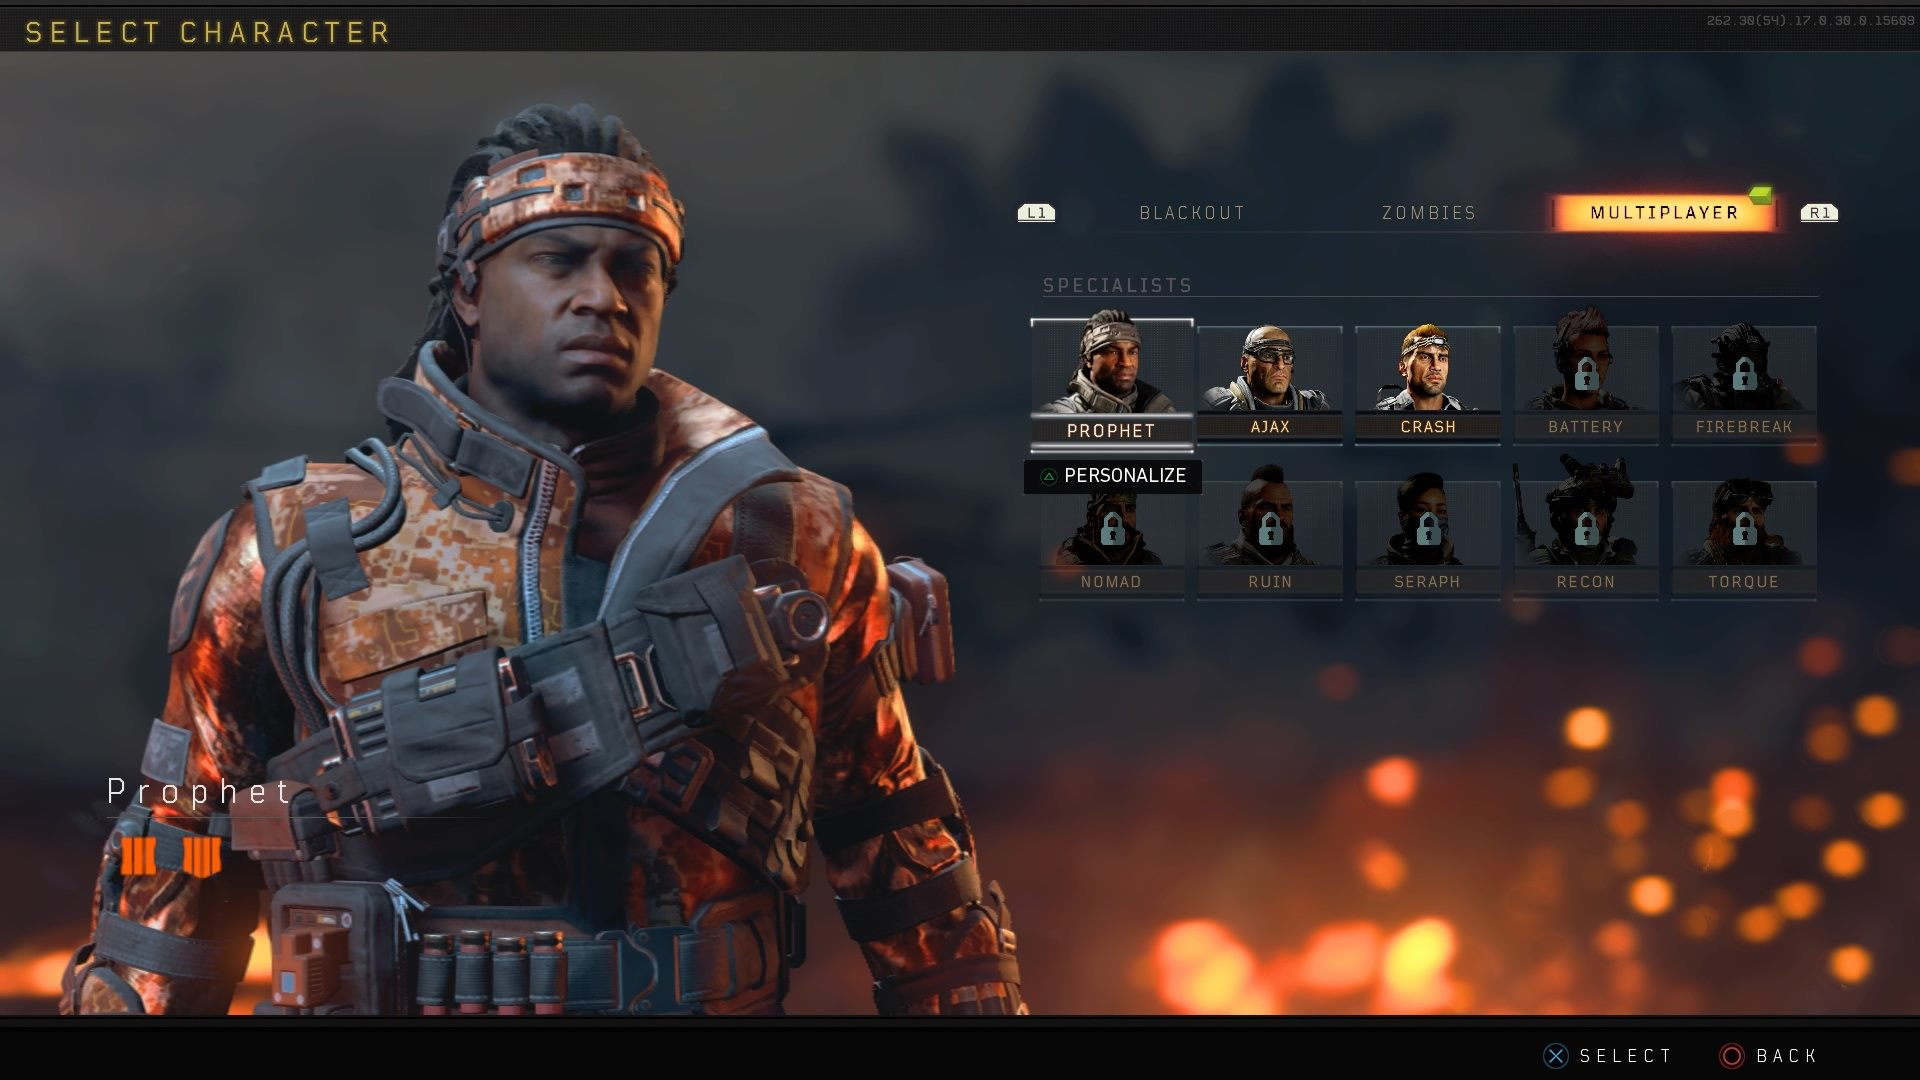 Guide To Unlocking Characters in Blackout in Call of Duty